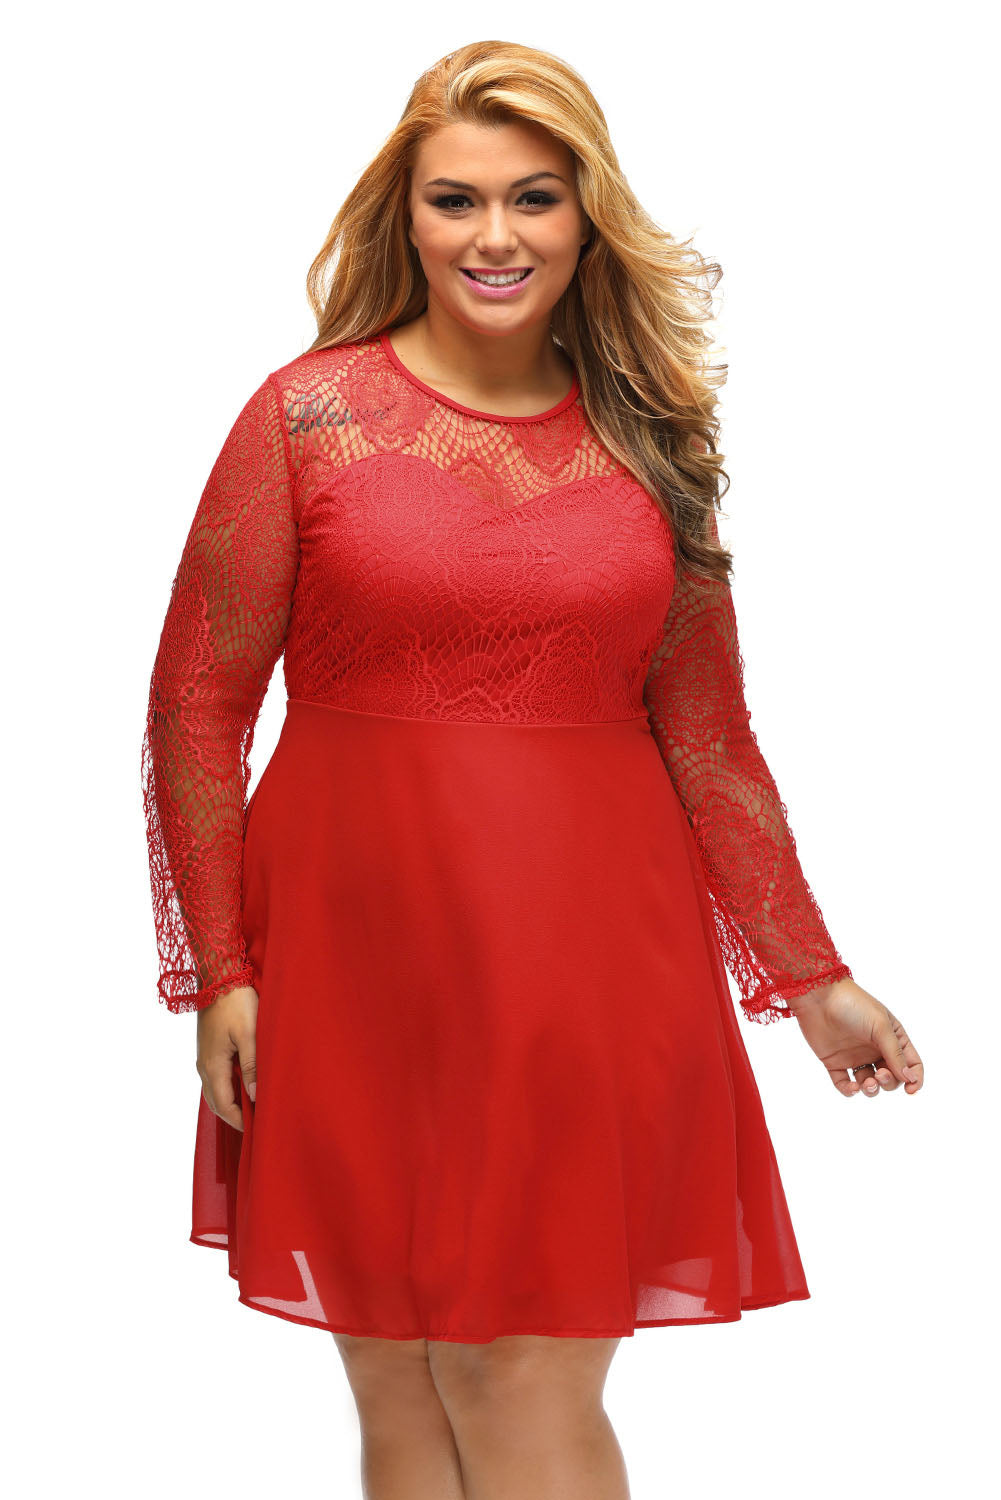 5b4a14c272 Sexy Red Boohoo Plus Size Lace Top Skater Dress – SEXY AFFORDABLE ...